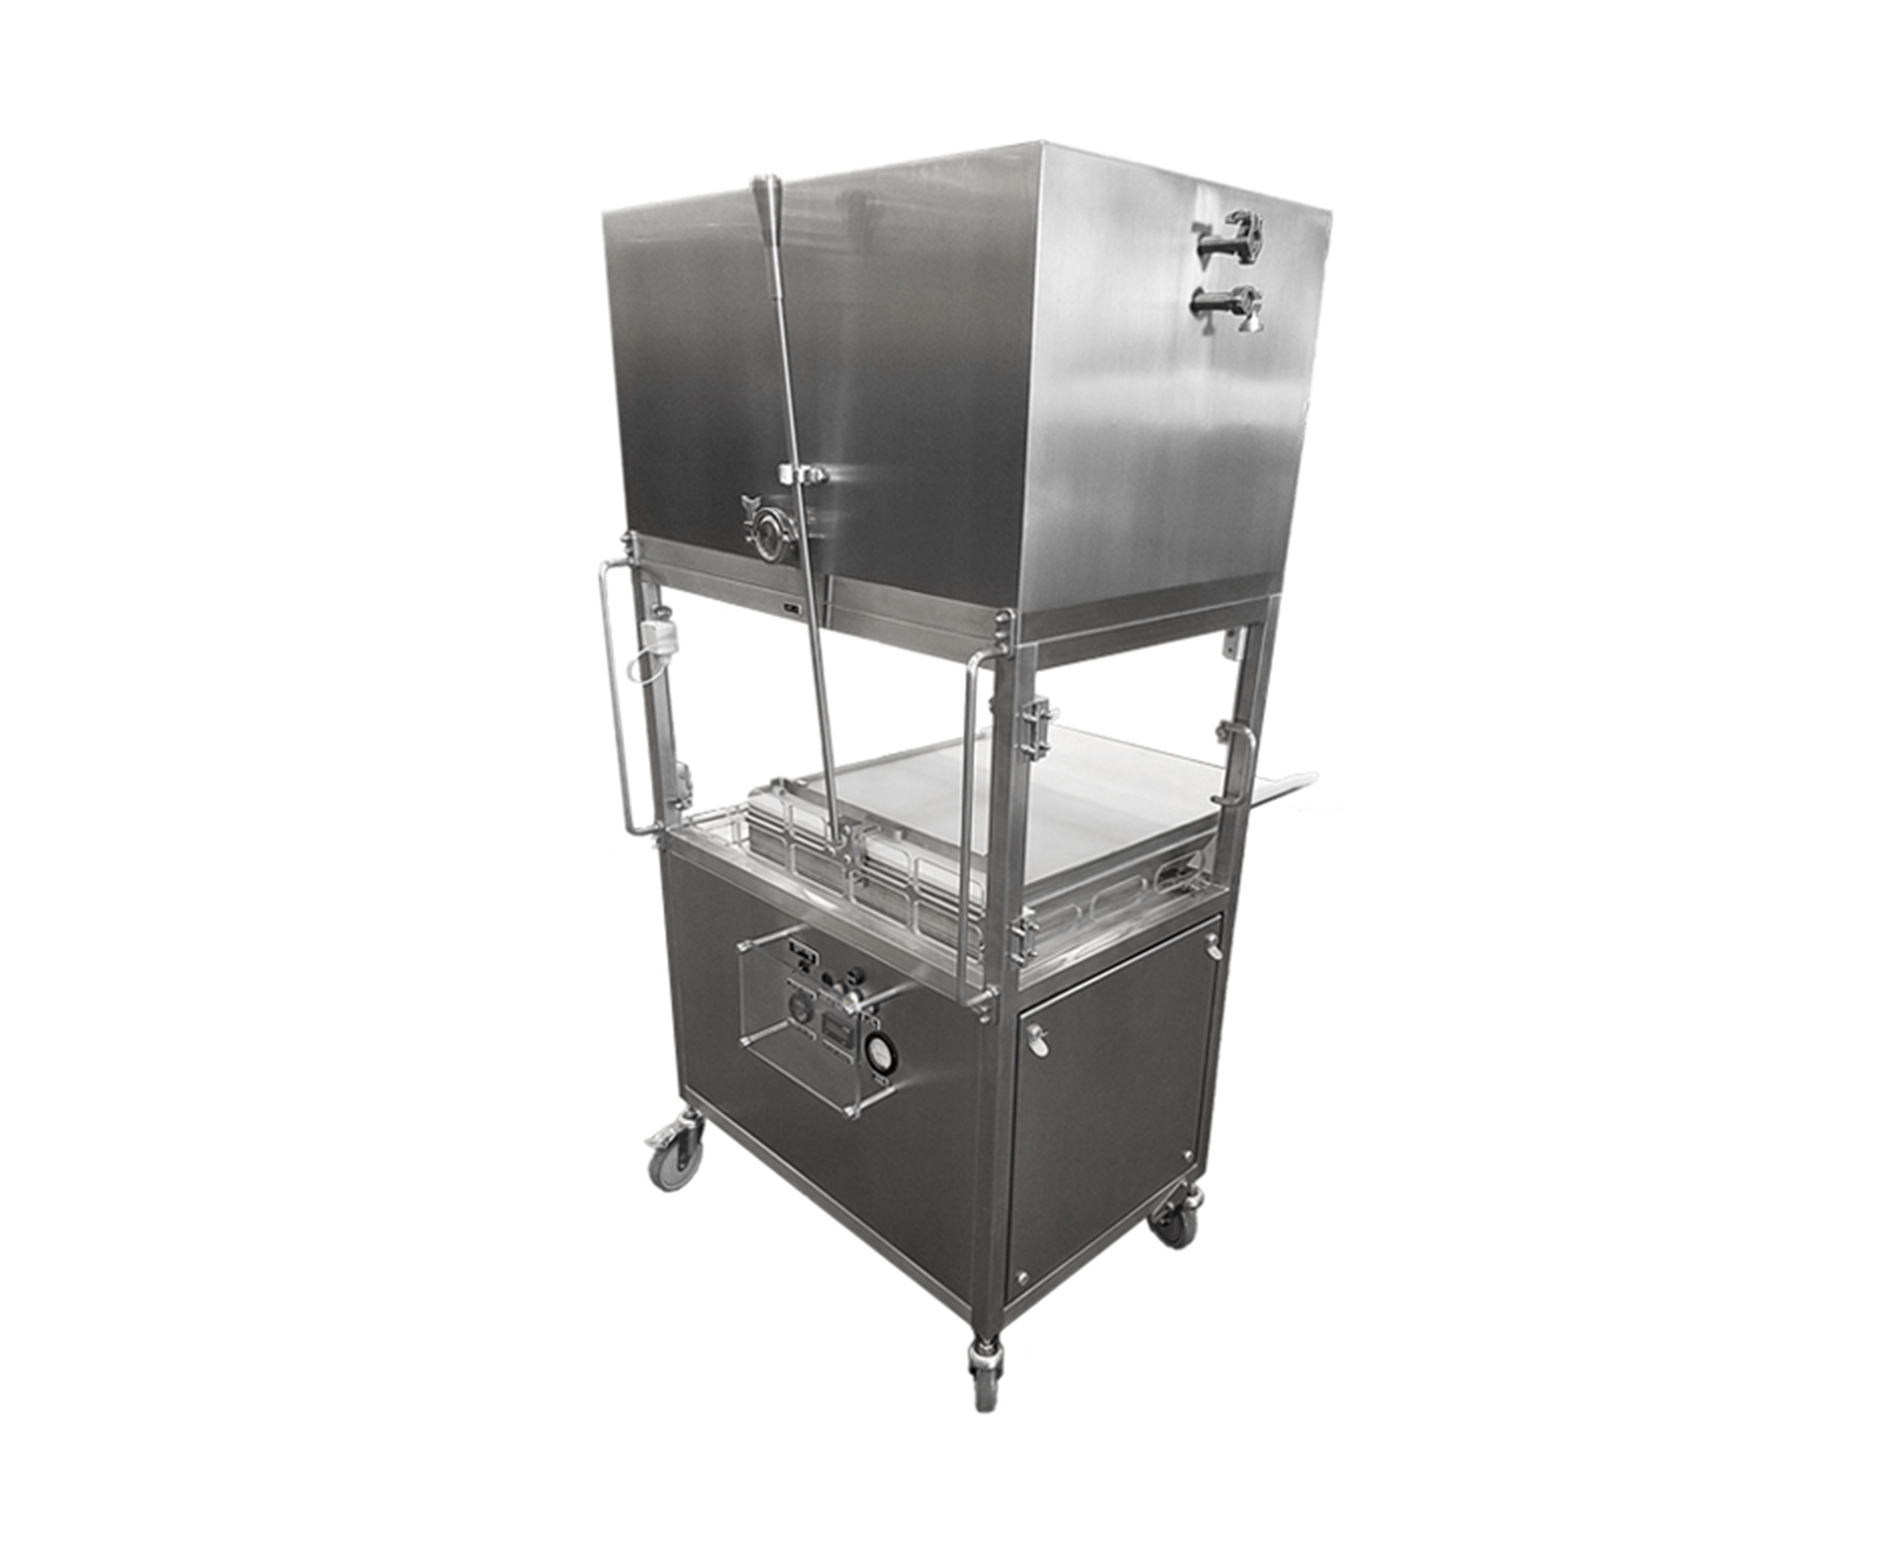 LFU CART 1 - Containment Systems